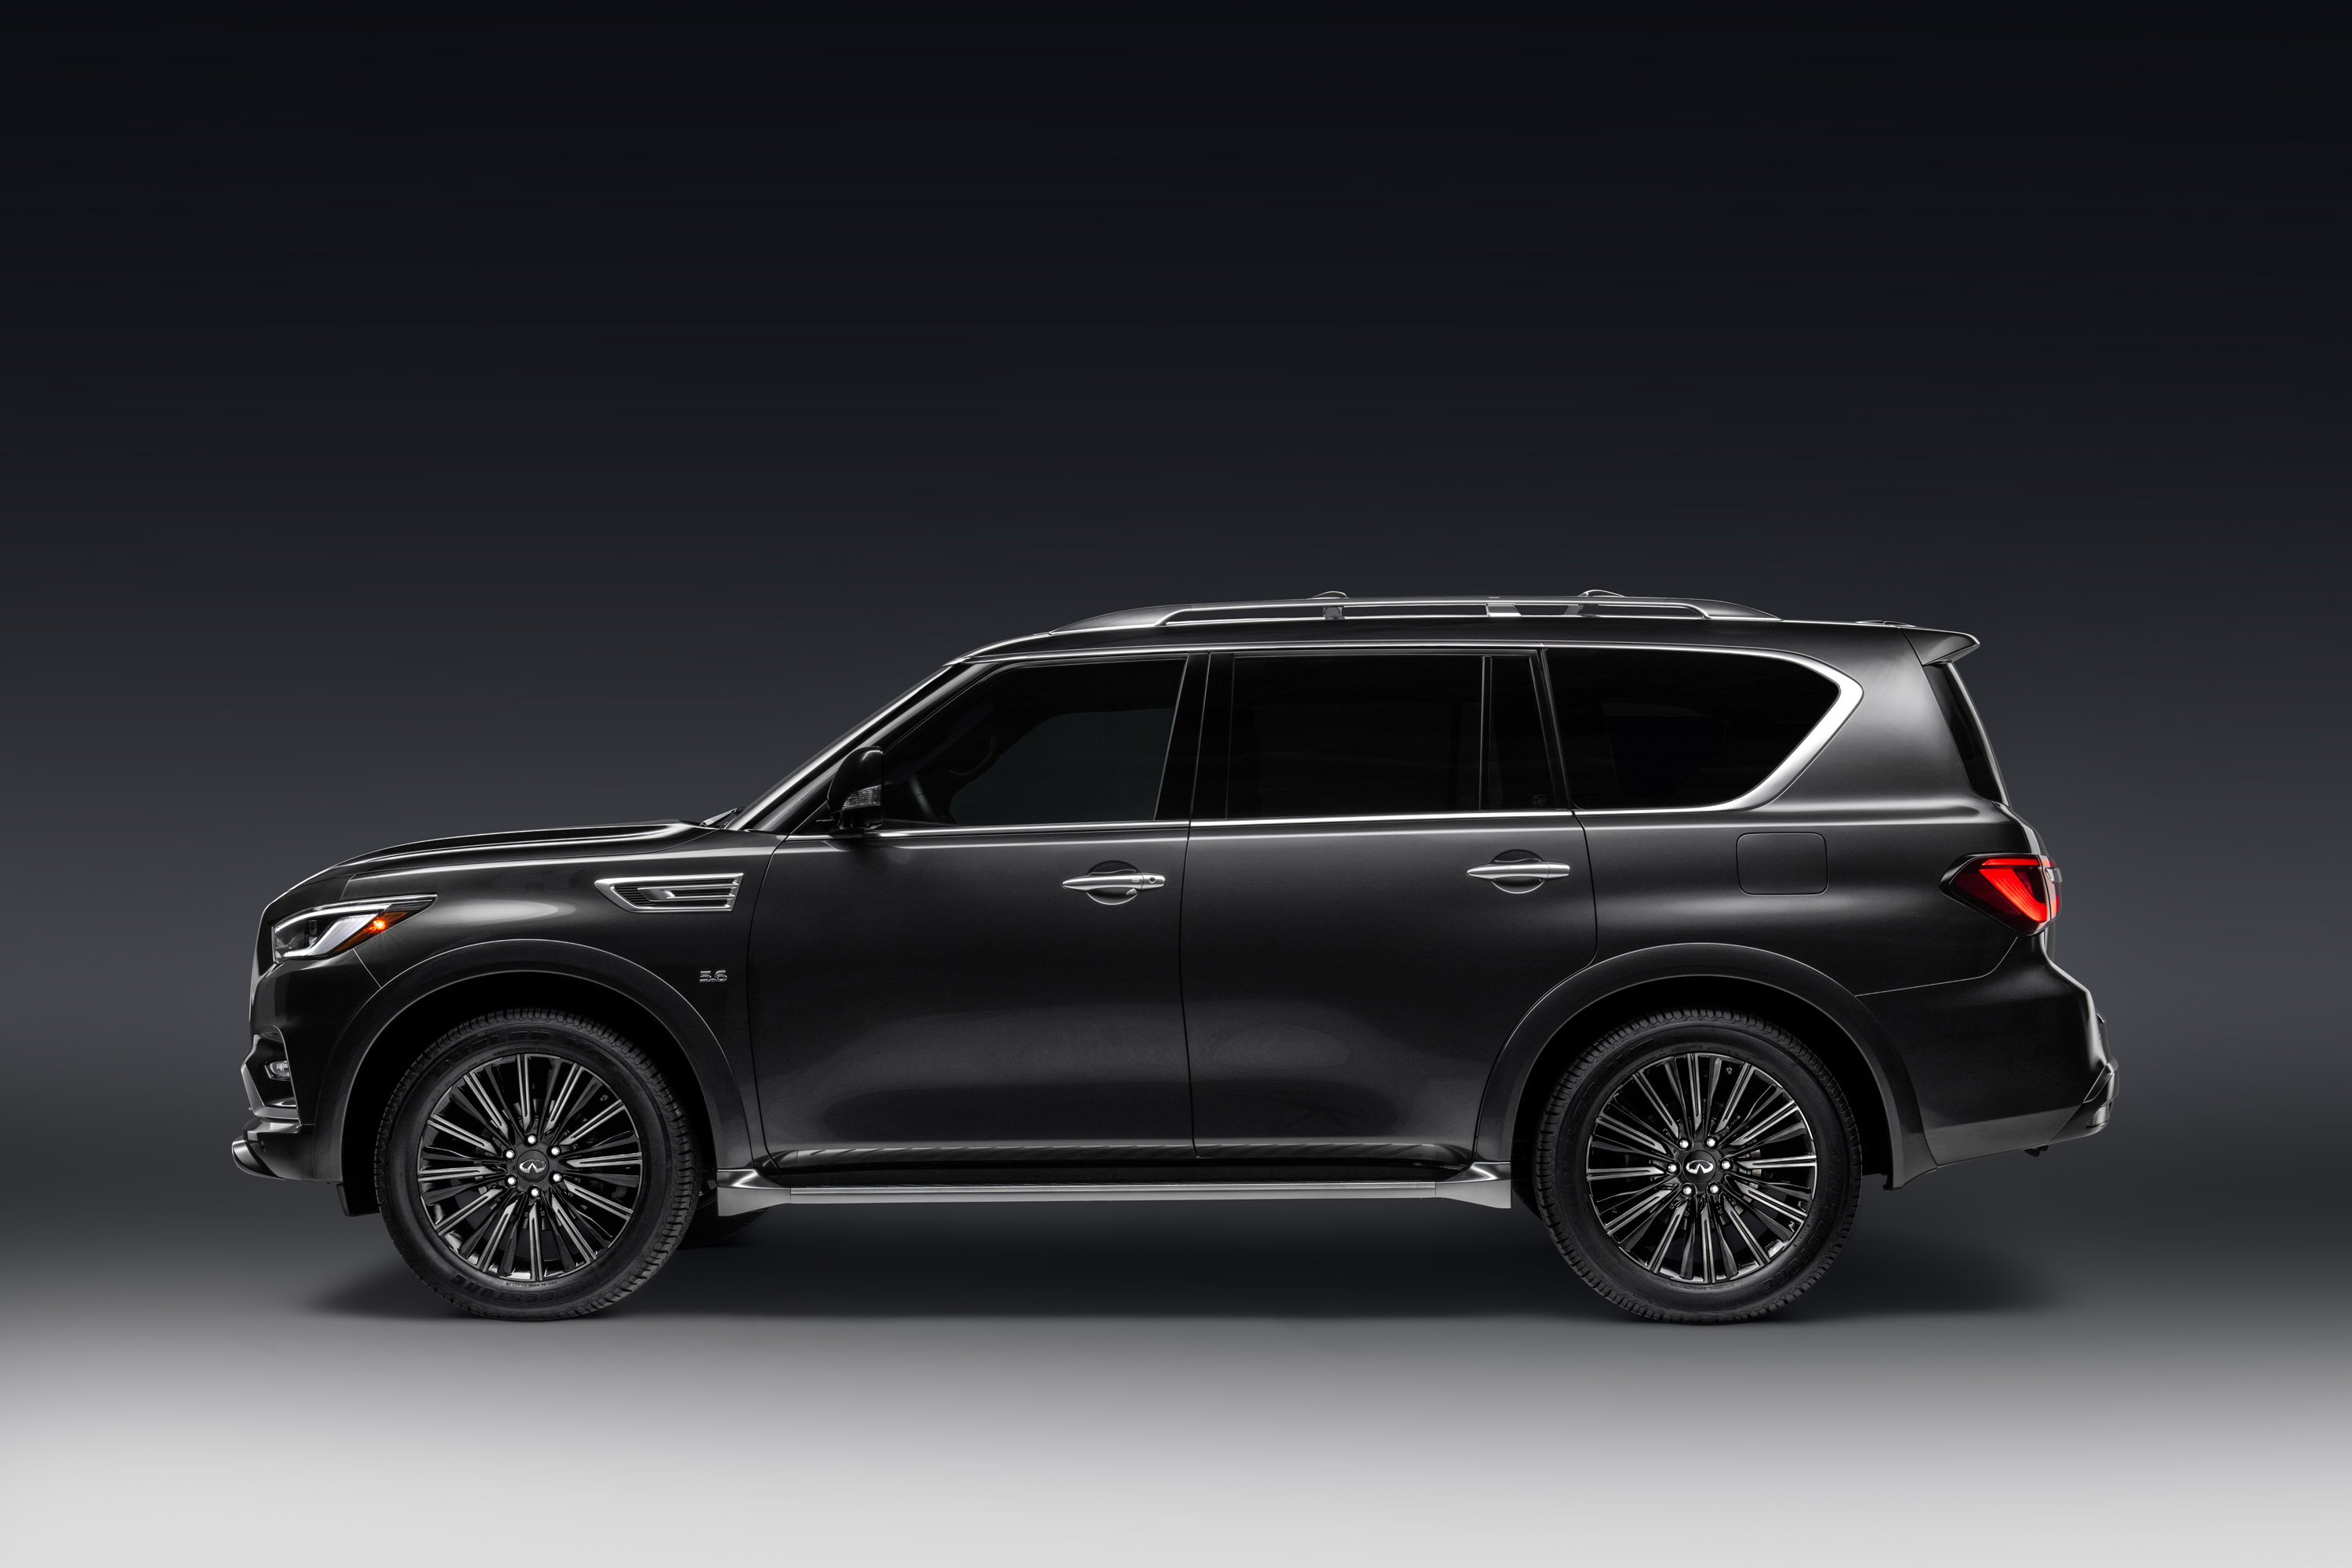 2019 infiniti qx80 limited edition